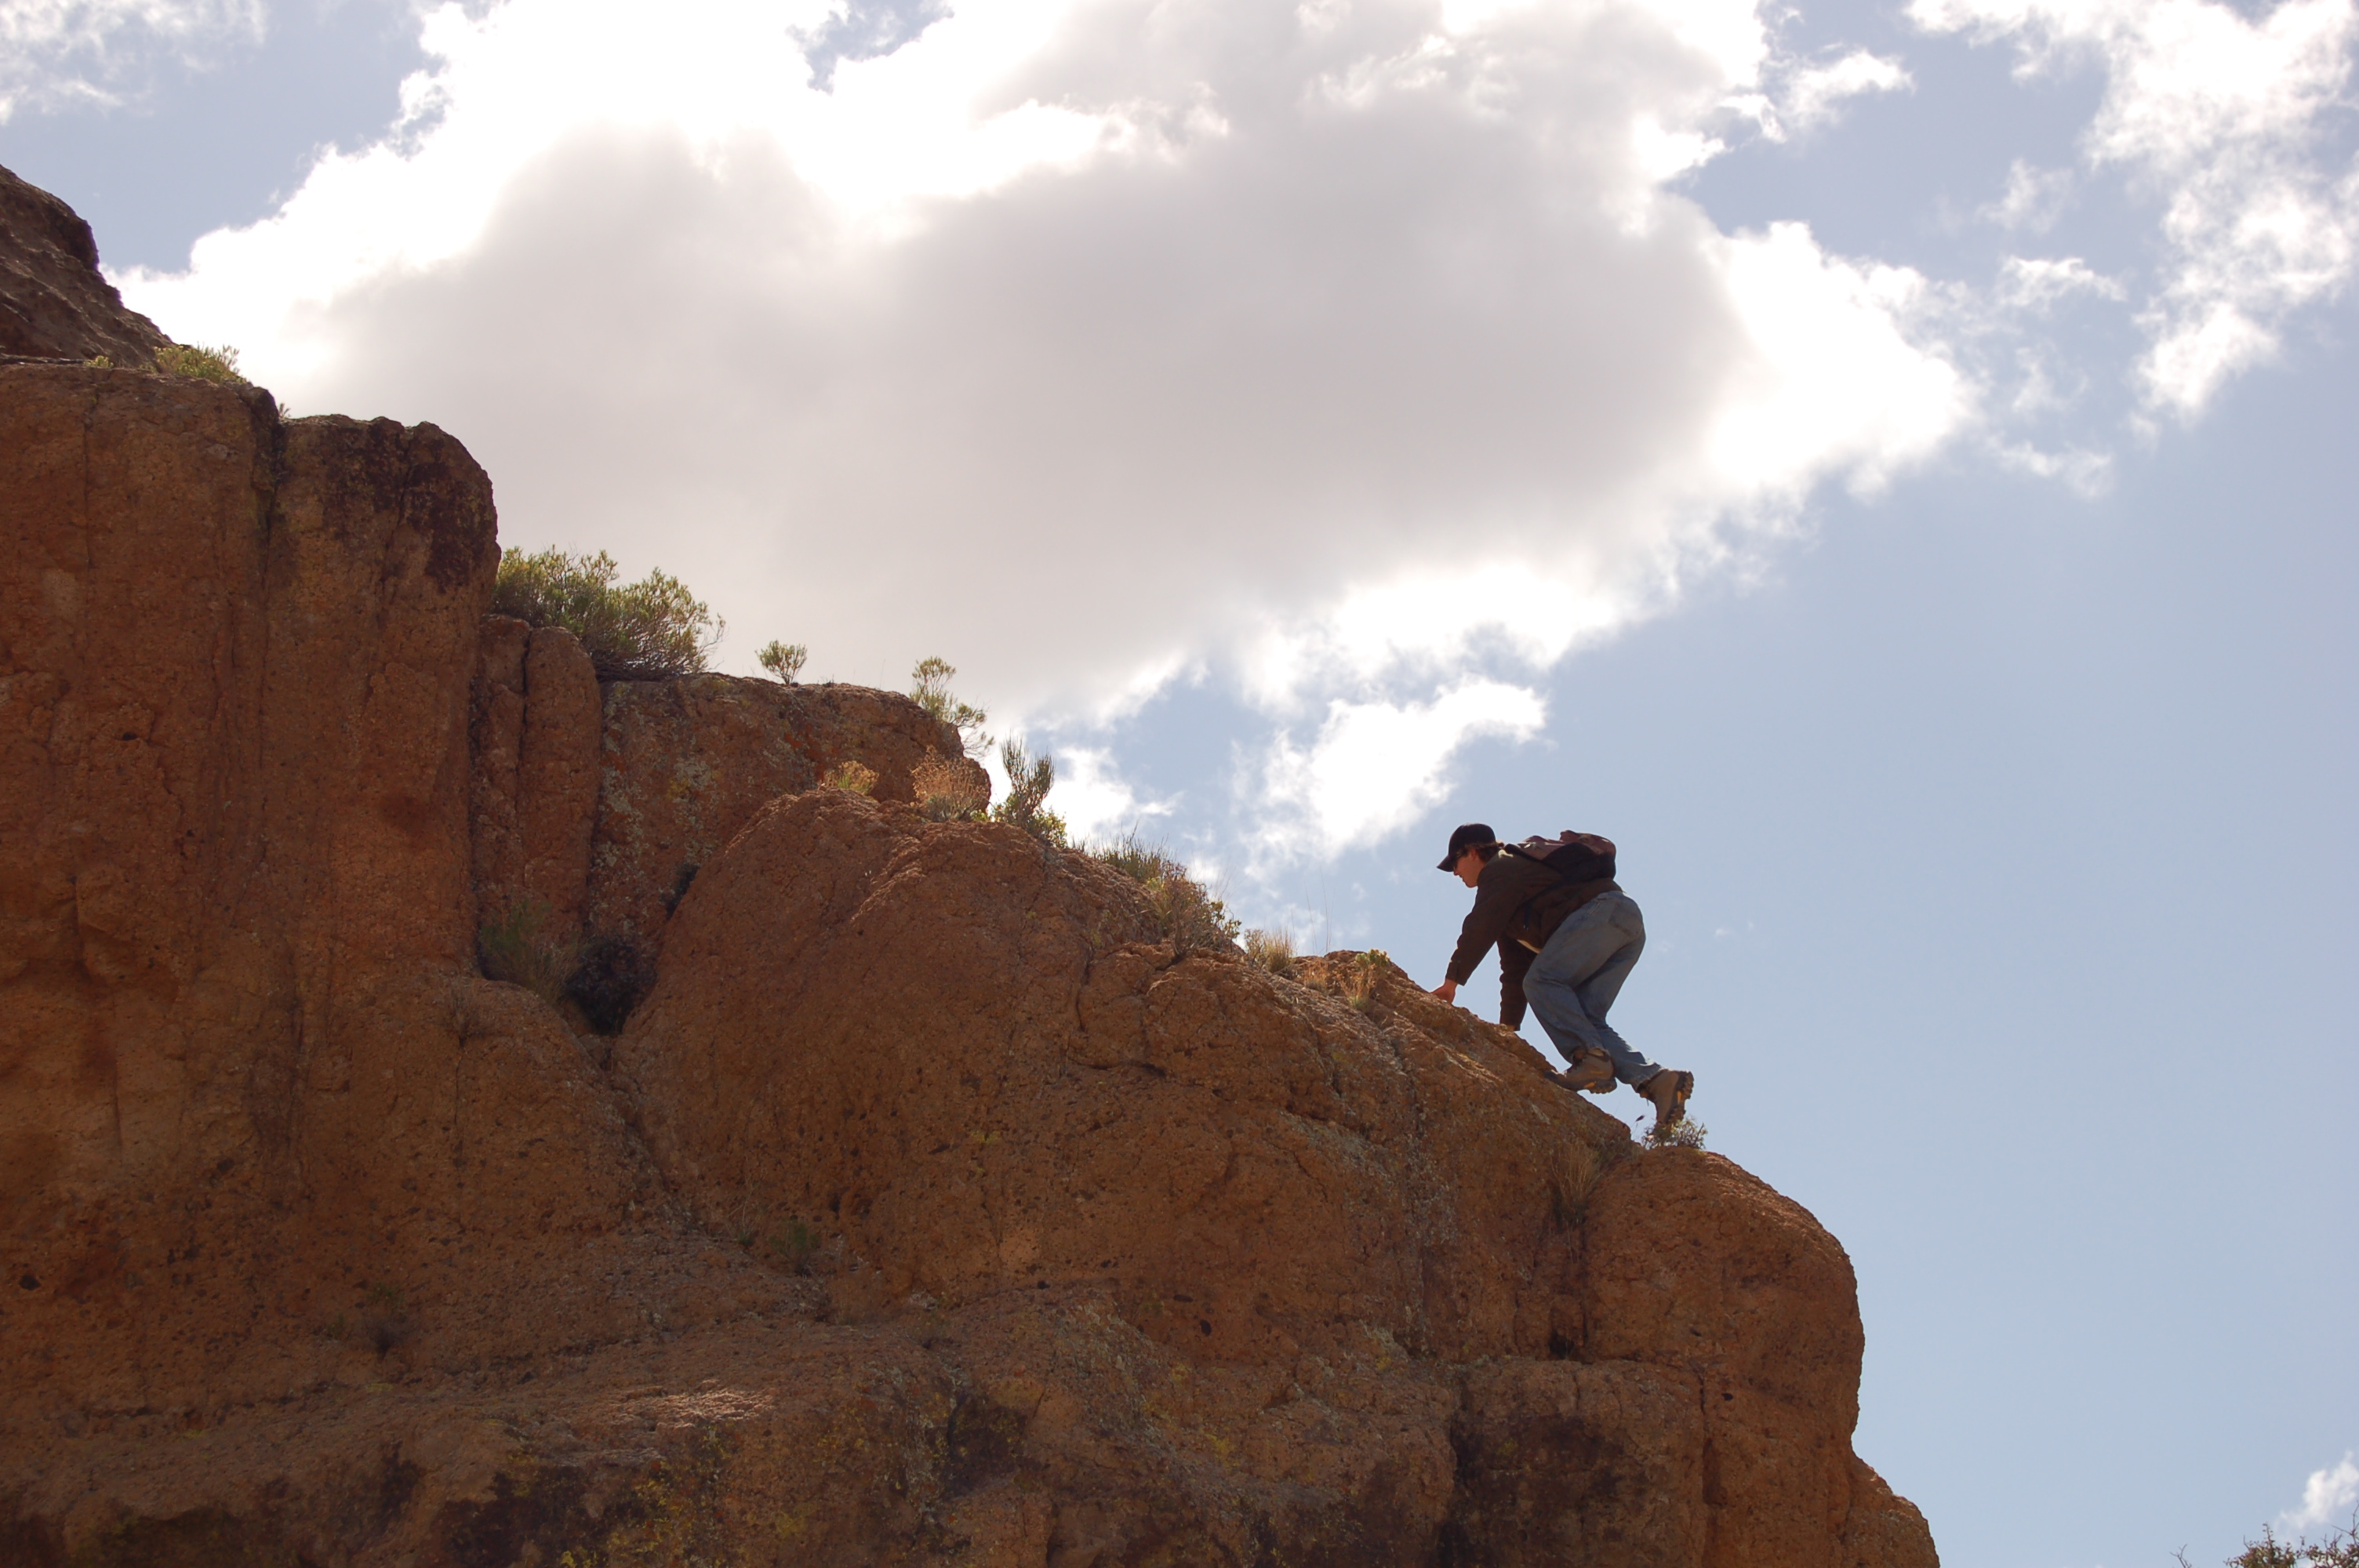 A man climbs on a cliff edge looking for rock samples